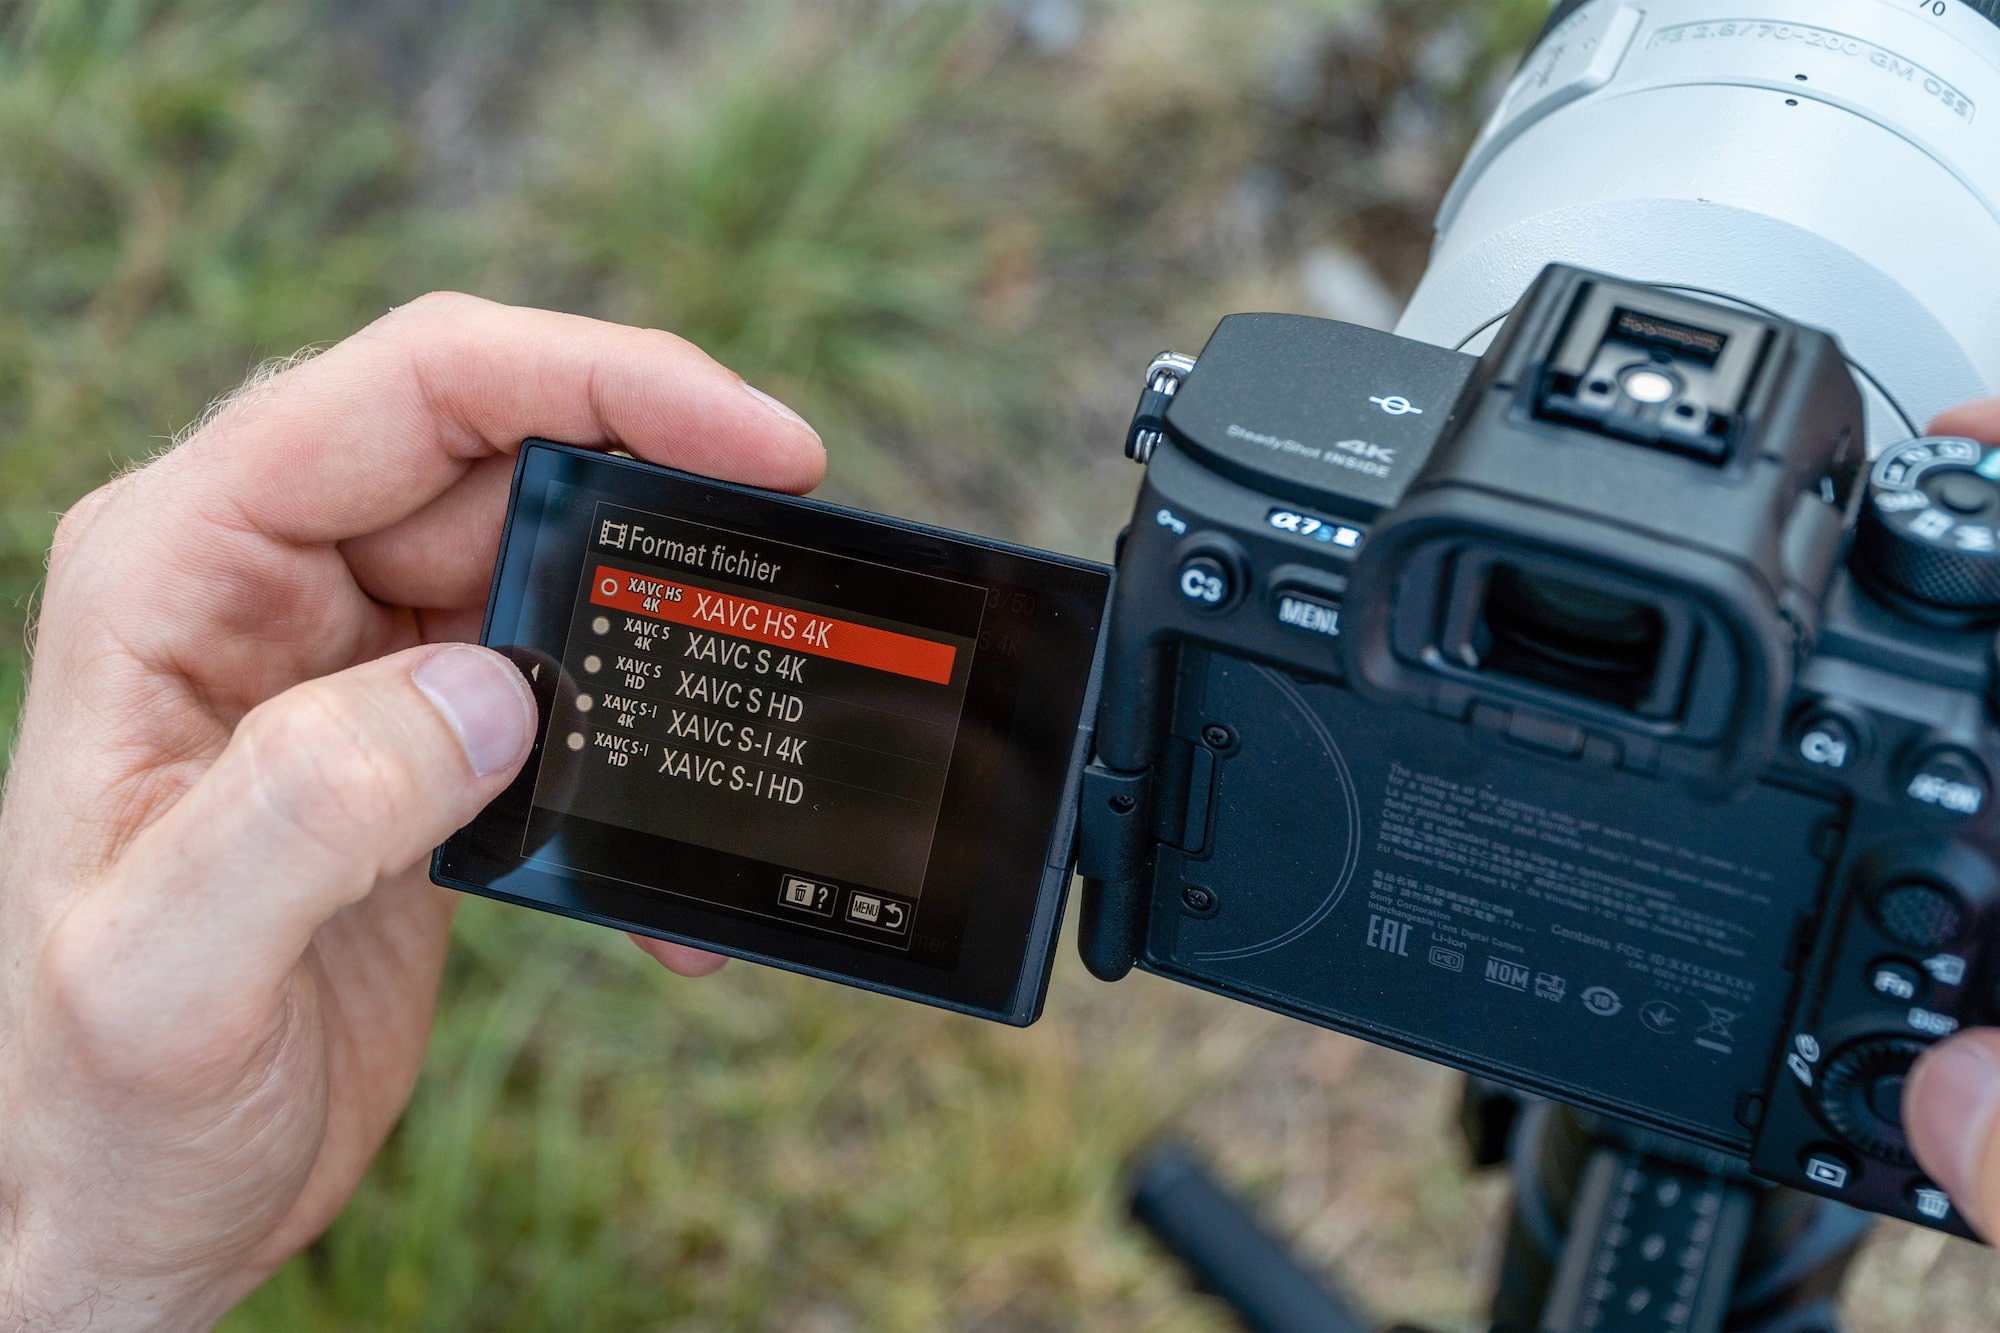 olivier schmitt sony alpha 6400 selecting the video settings on an alpha camera using the touchscreen